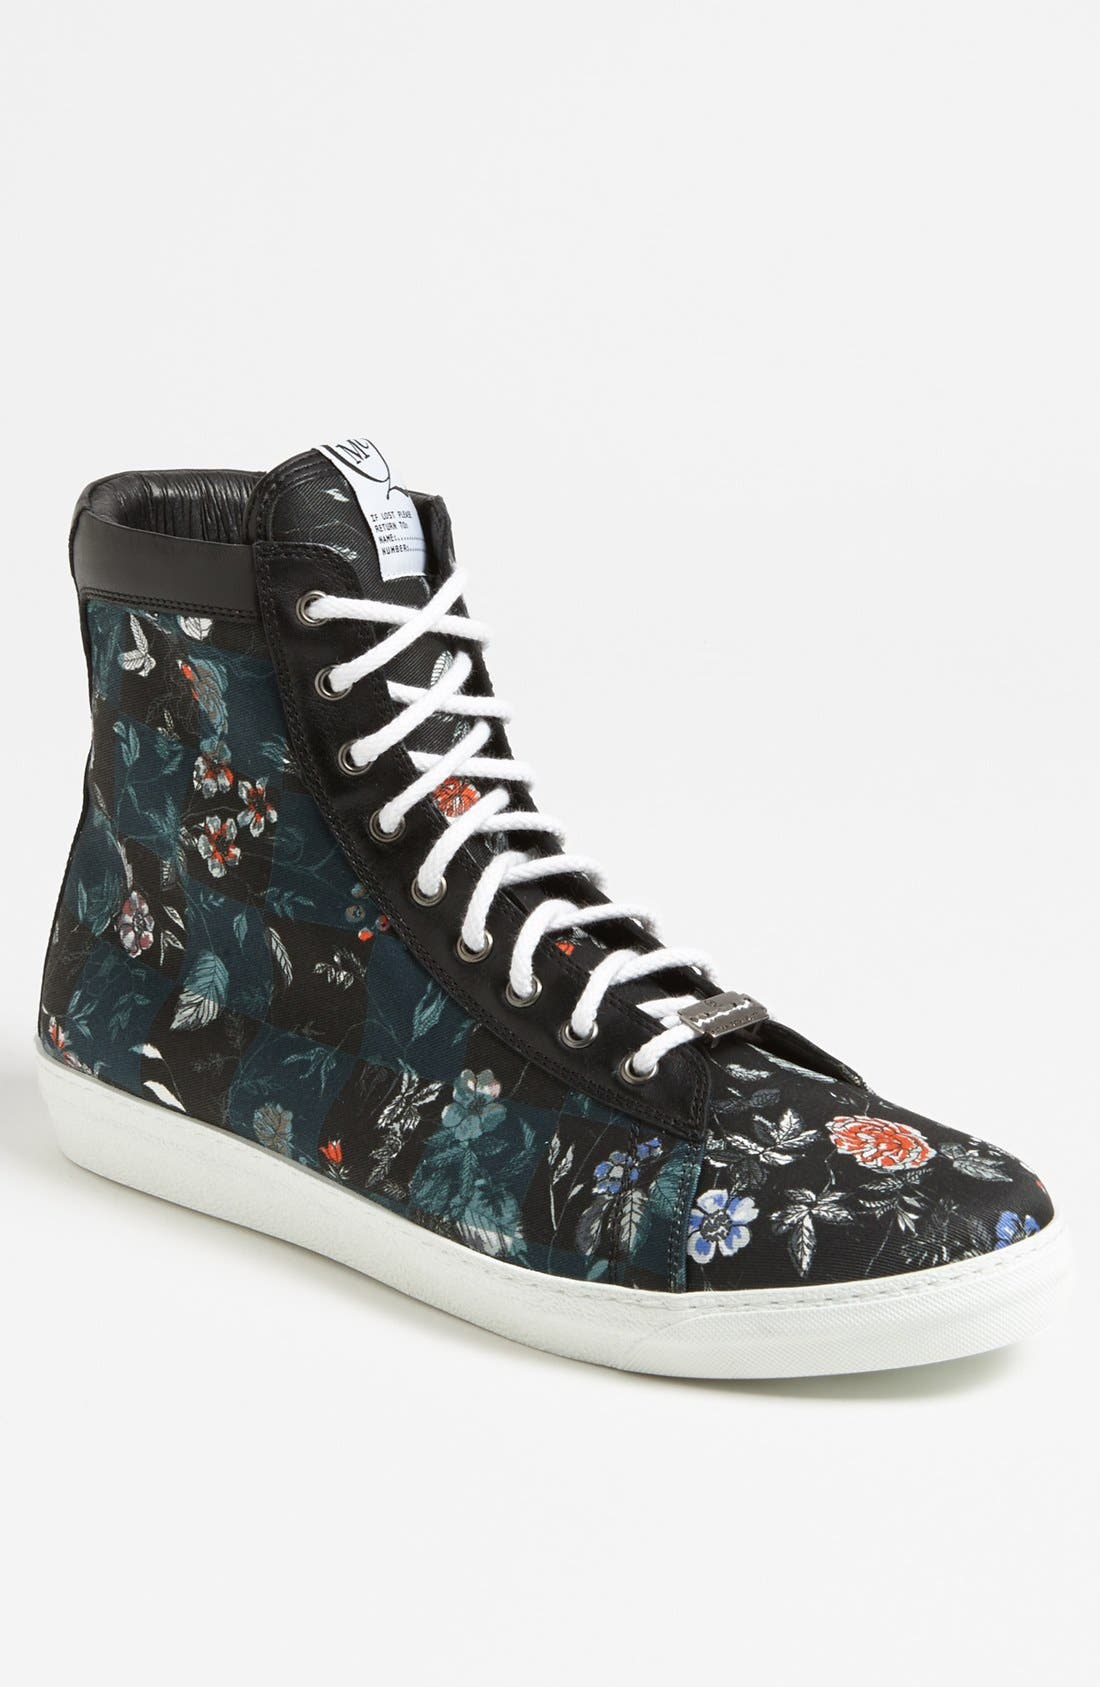 Alternate Image 1 Selected - McQ by Alexander McQueen Floral High Cut Sneaker